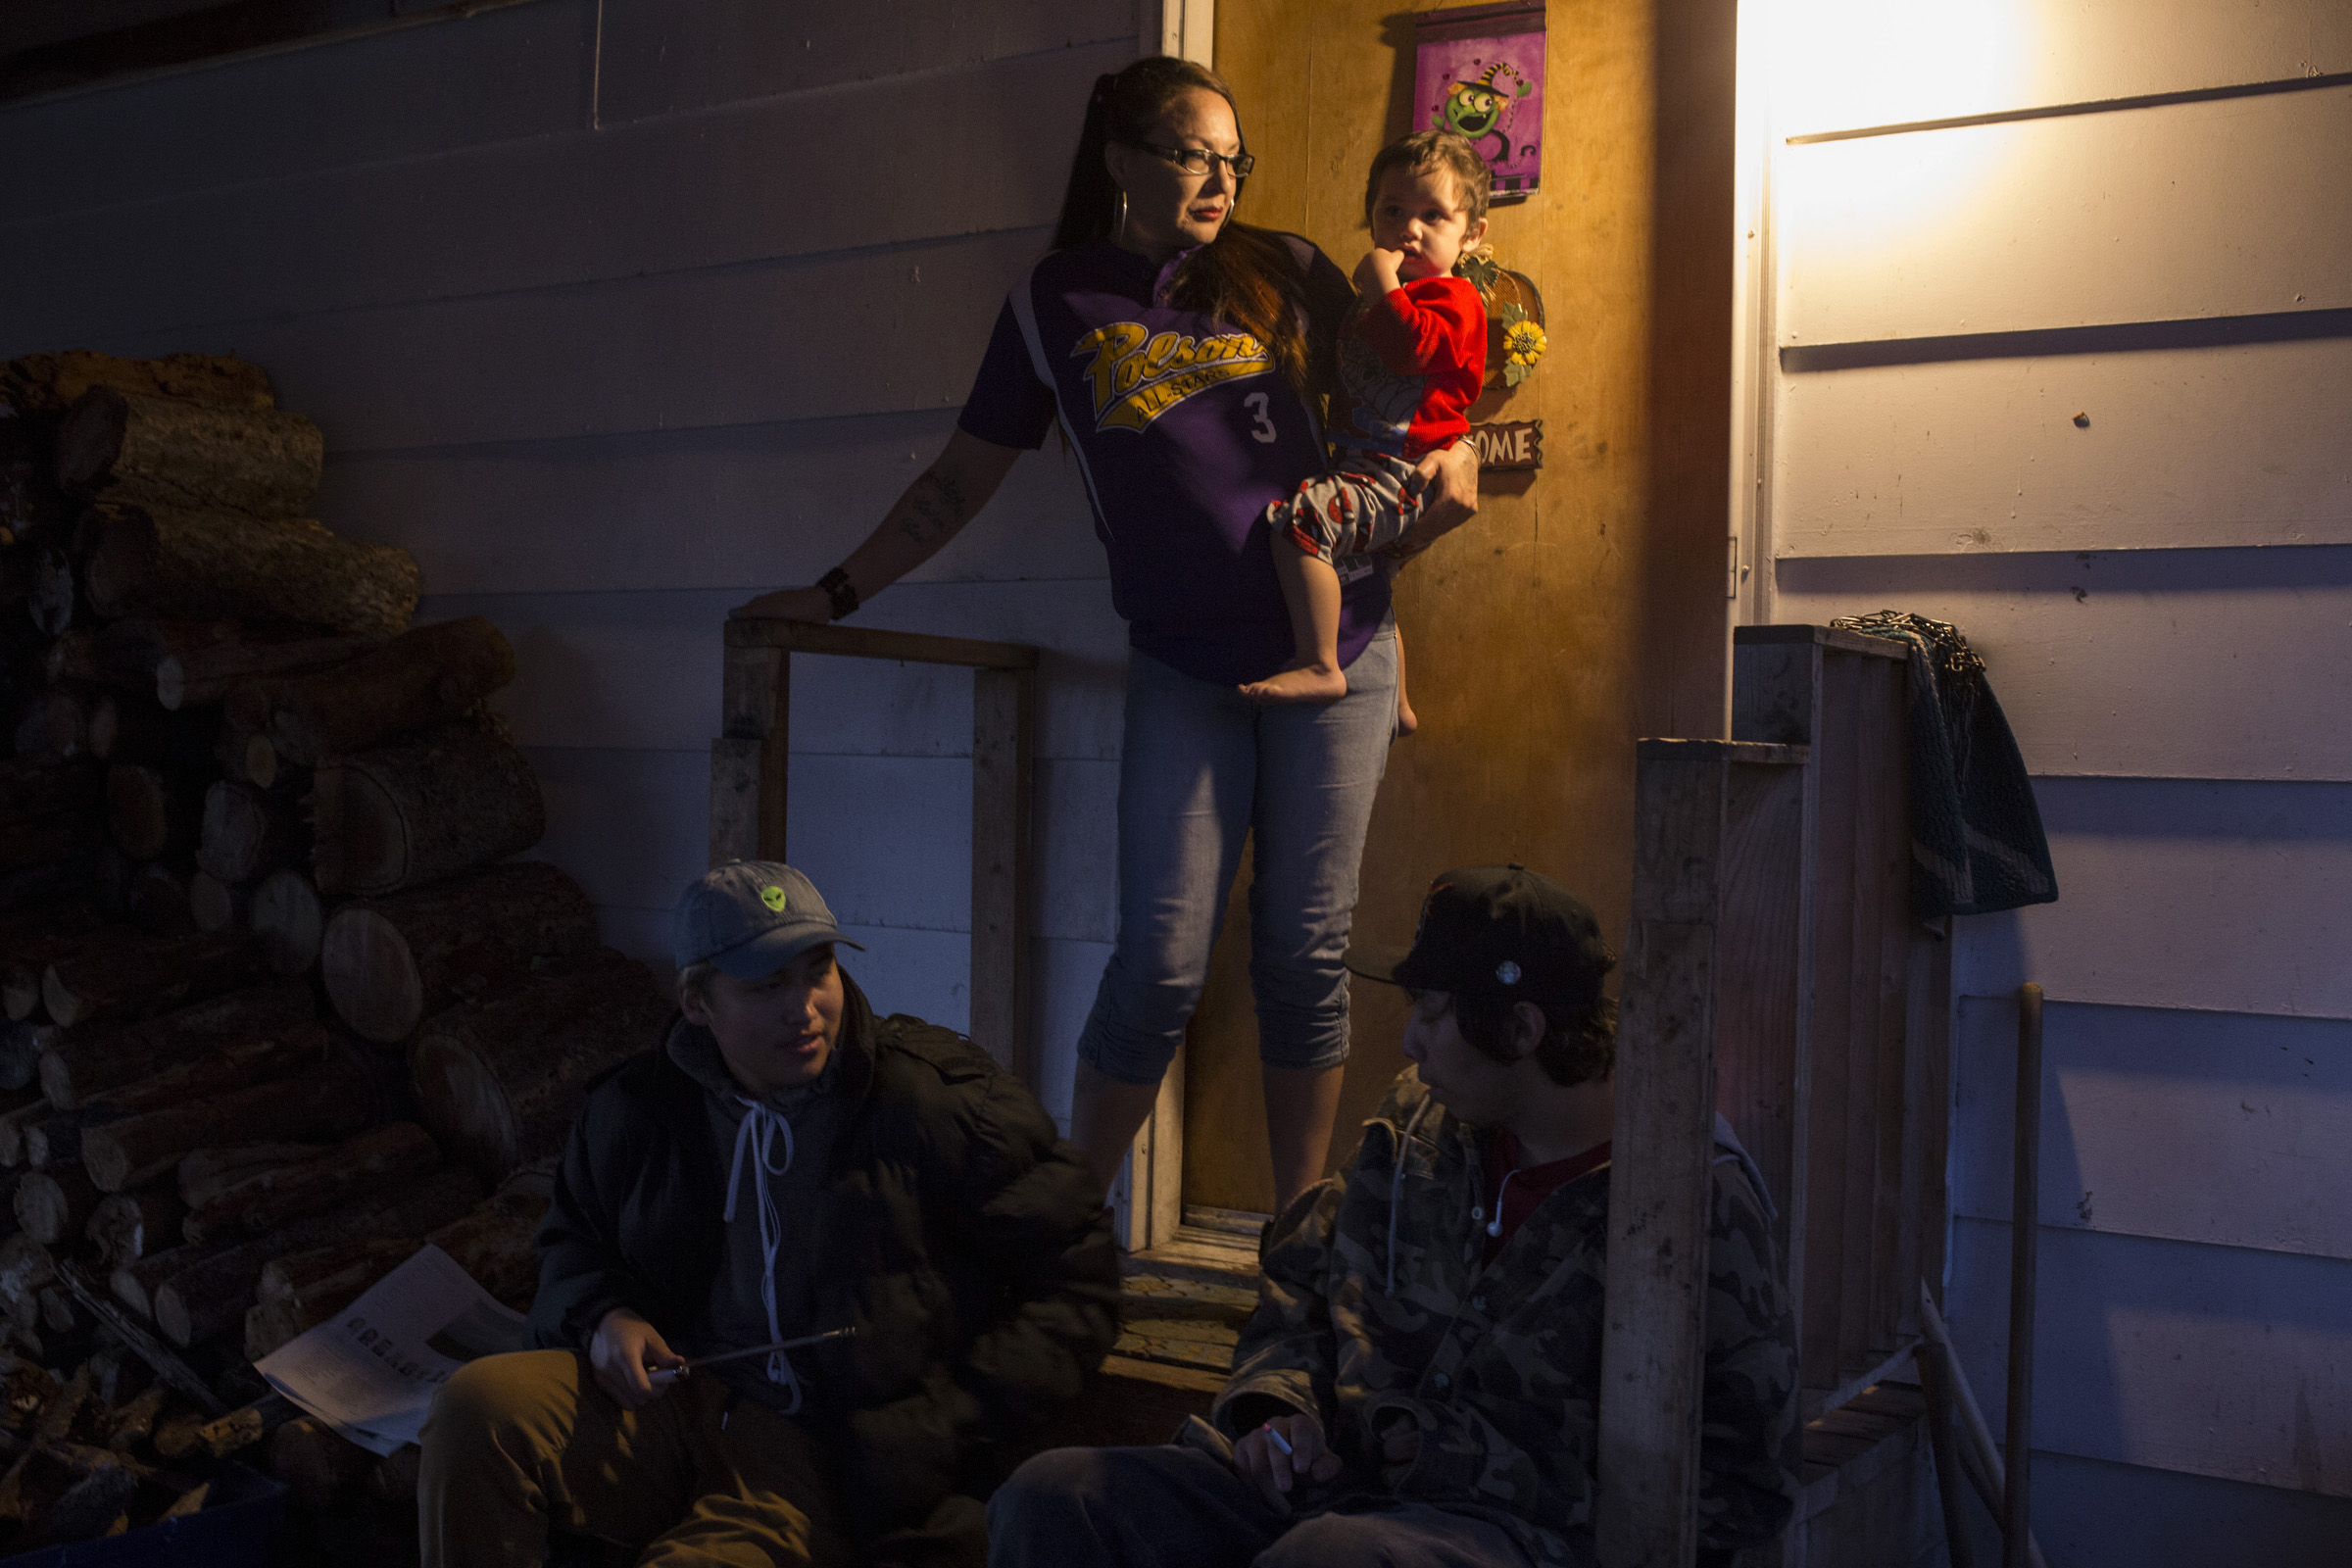 Susie Boushie, 37, looks out from her front porch while holding her grandson, Niste Omeasoo, 2, as two of her son's friends sit on their porch at their home in Pablo, Montana, on Sunday, October 22, 2017. (Photo by Brittany Greeson)